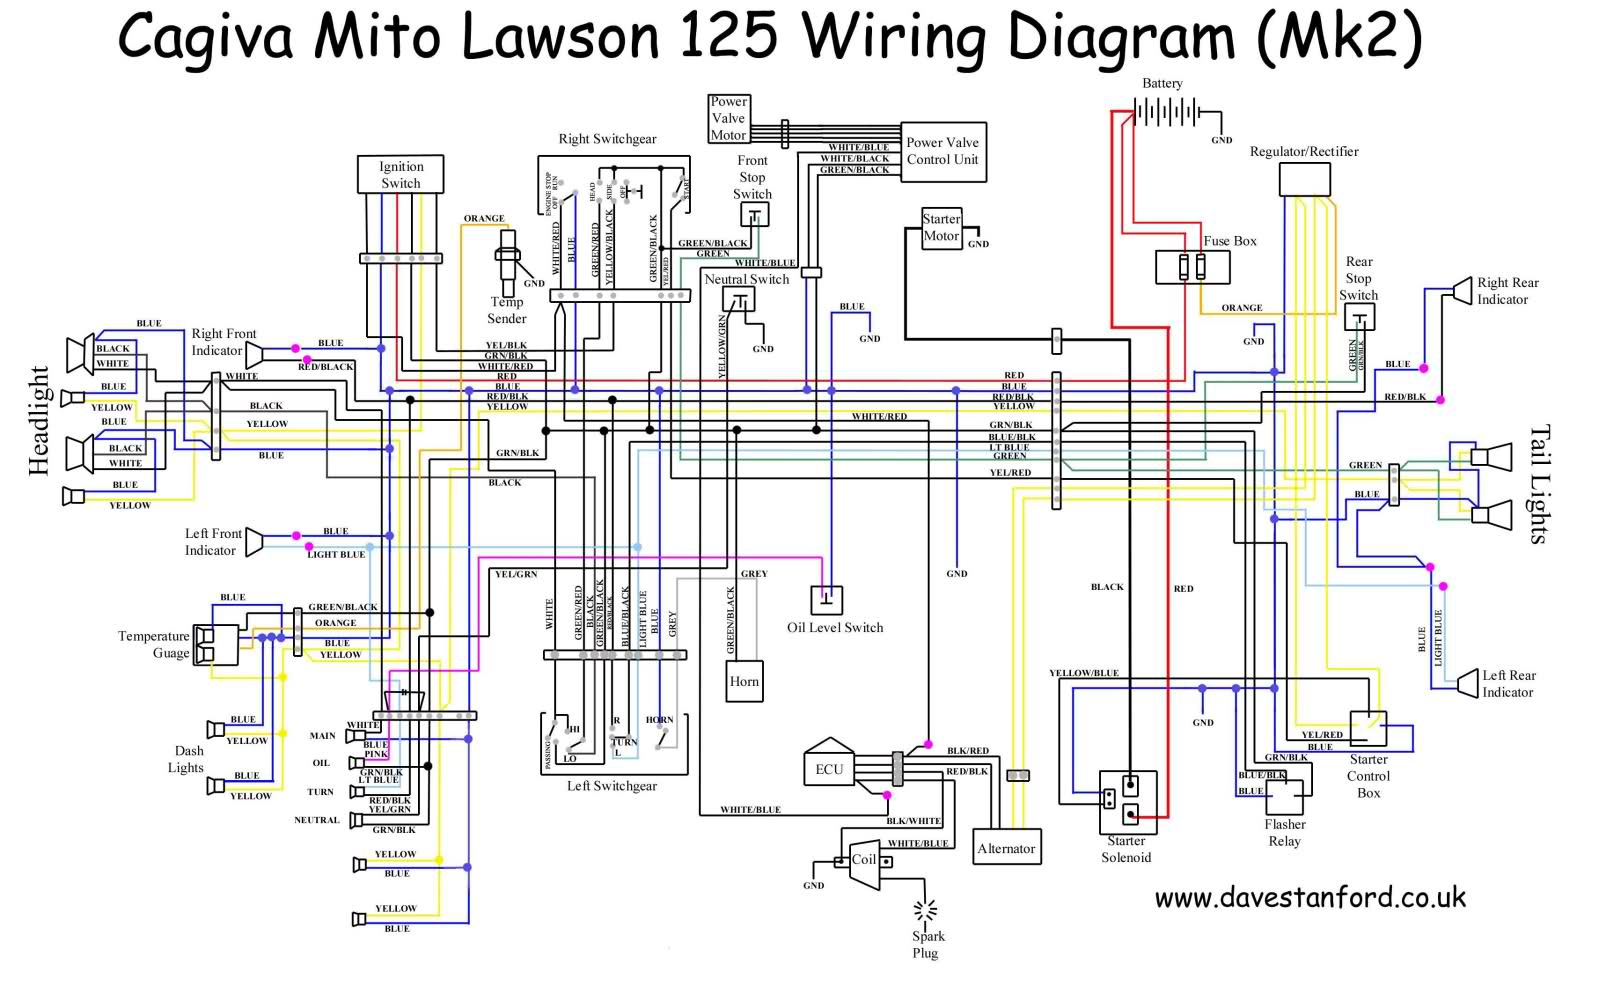 Jcb Ignition Switch Wiring Diagram : Jcb b backhoe parts diagram free engine image